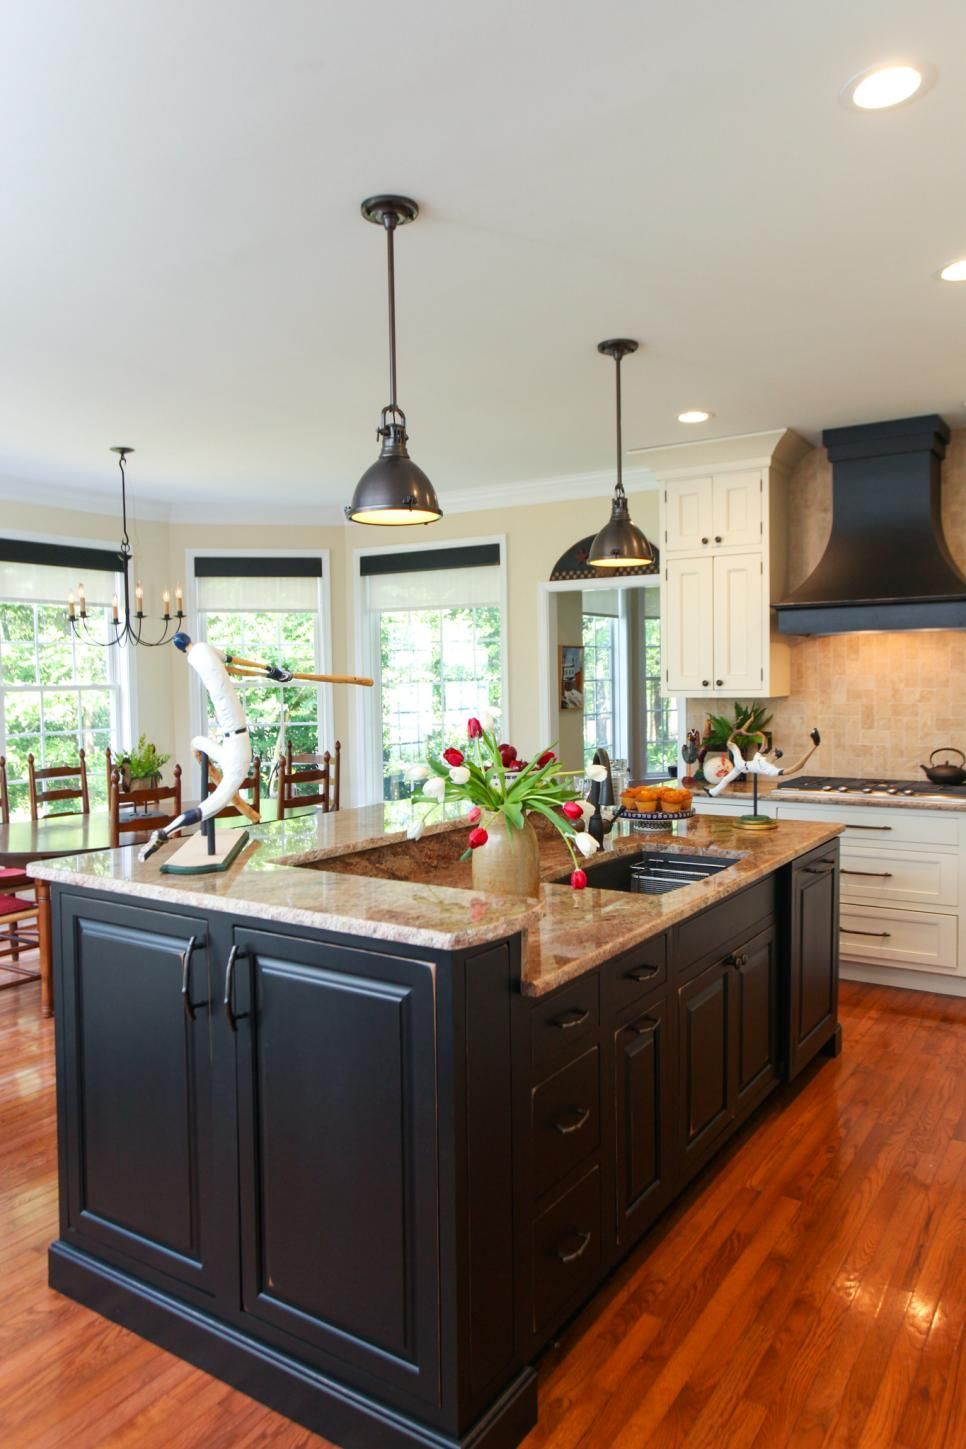 Then Do You Know That There Are Just As Many Ideas Of Kitchen Island Table As Those Two Kitchenisland Kitchen Renovation Kitchen Design Kitchen Remodel